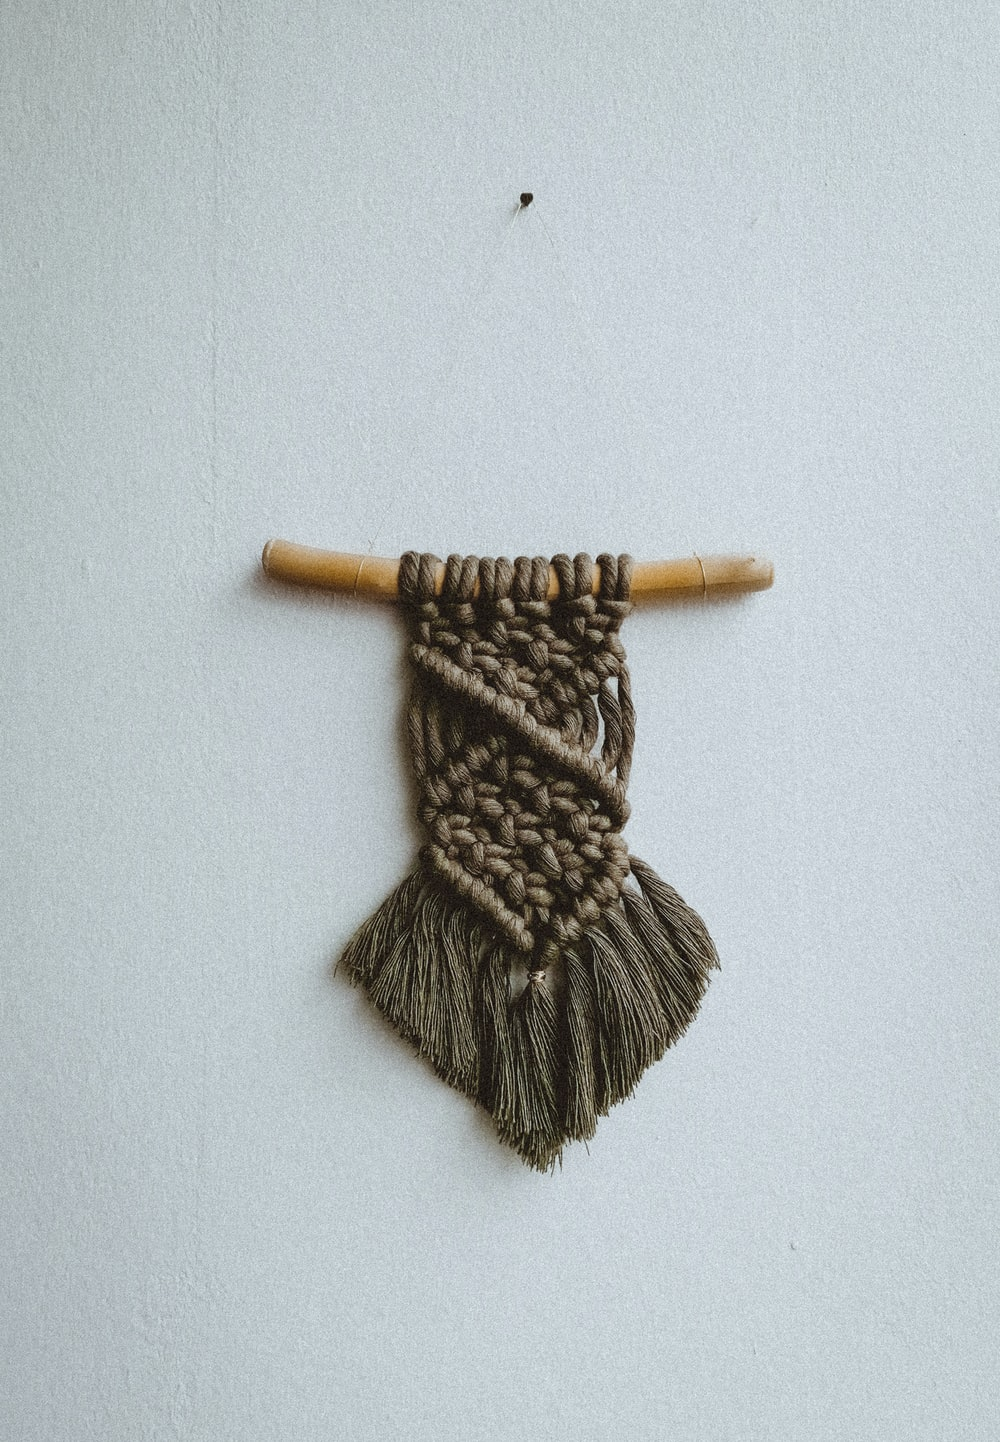 brown and black knit textile